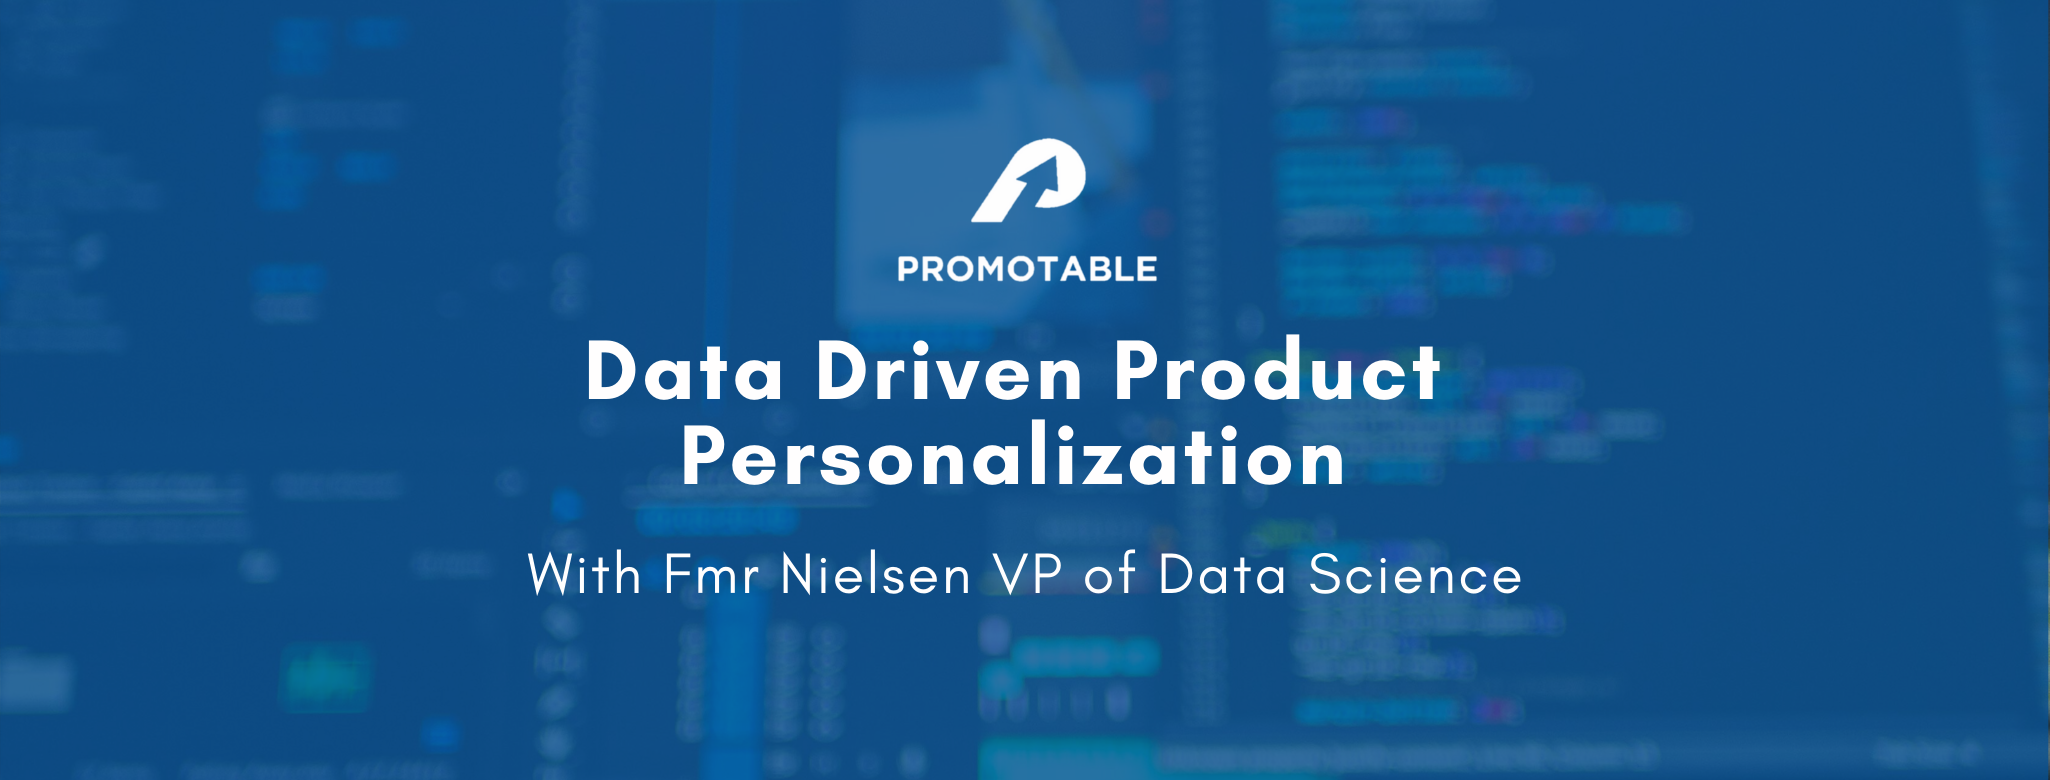 Data Driven Product Personalization with Fmr Nielsen VP of Data Science